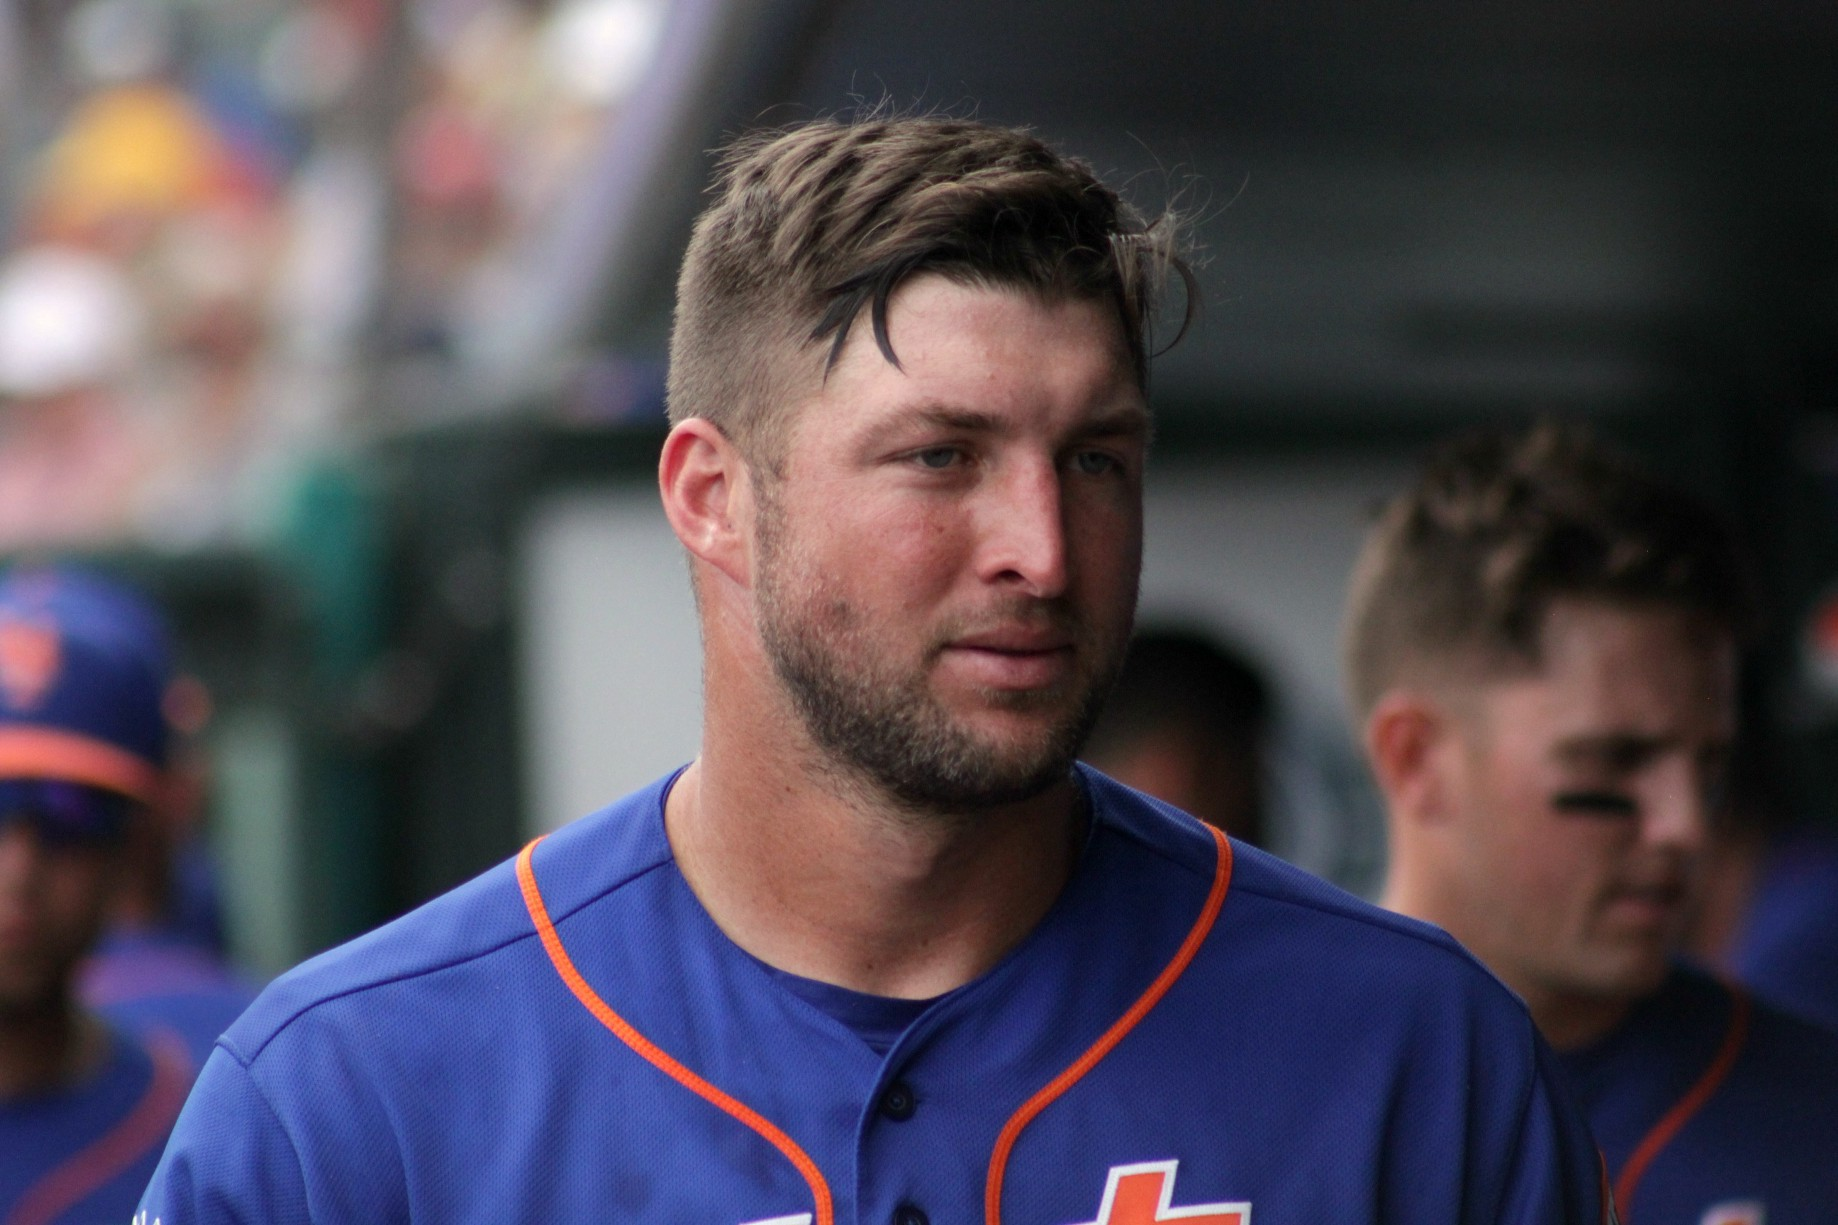 Is Tim Tebow a real baseball player? - Next Generation Baseball